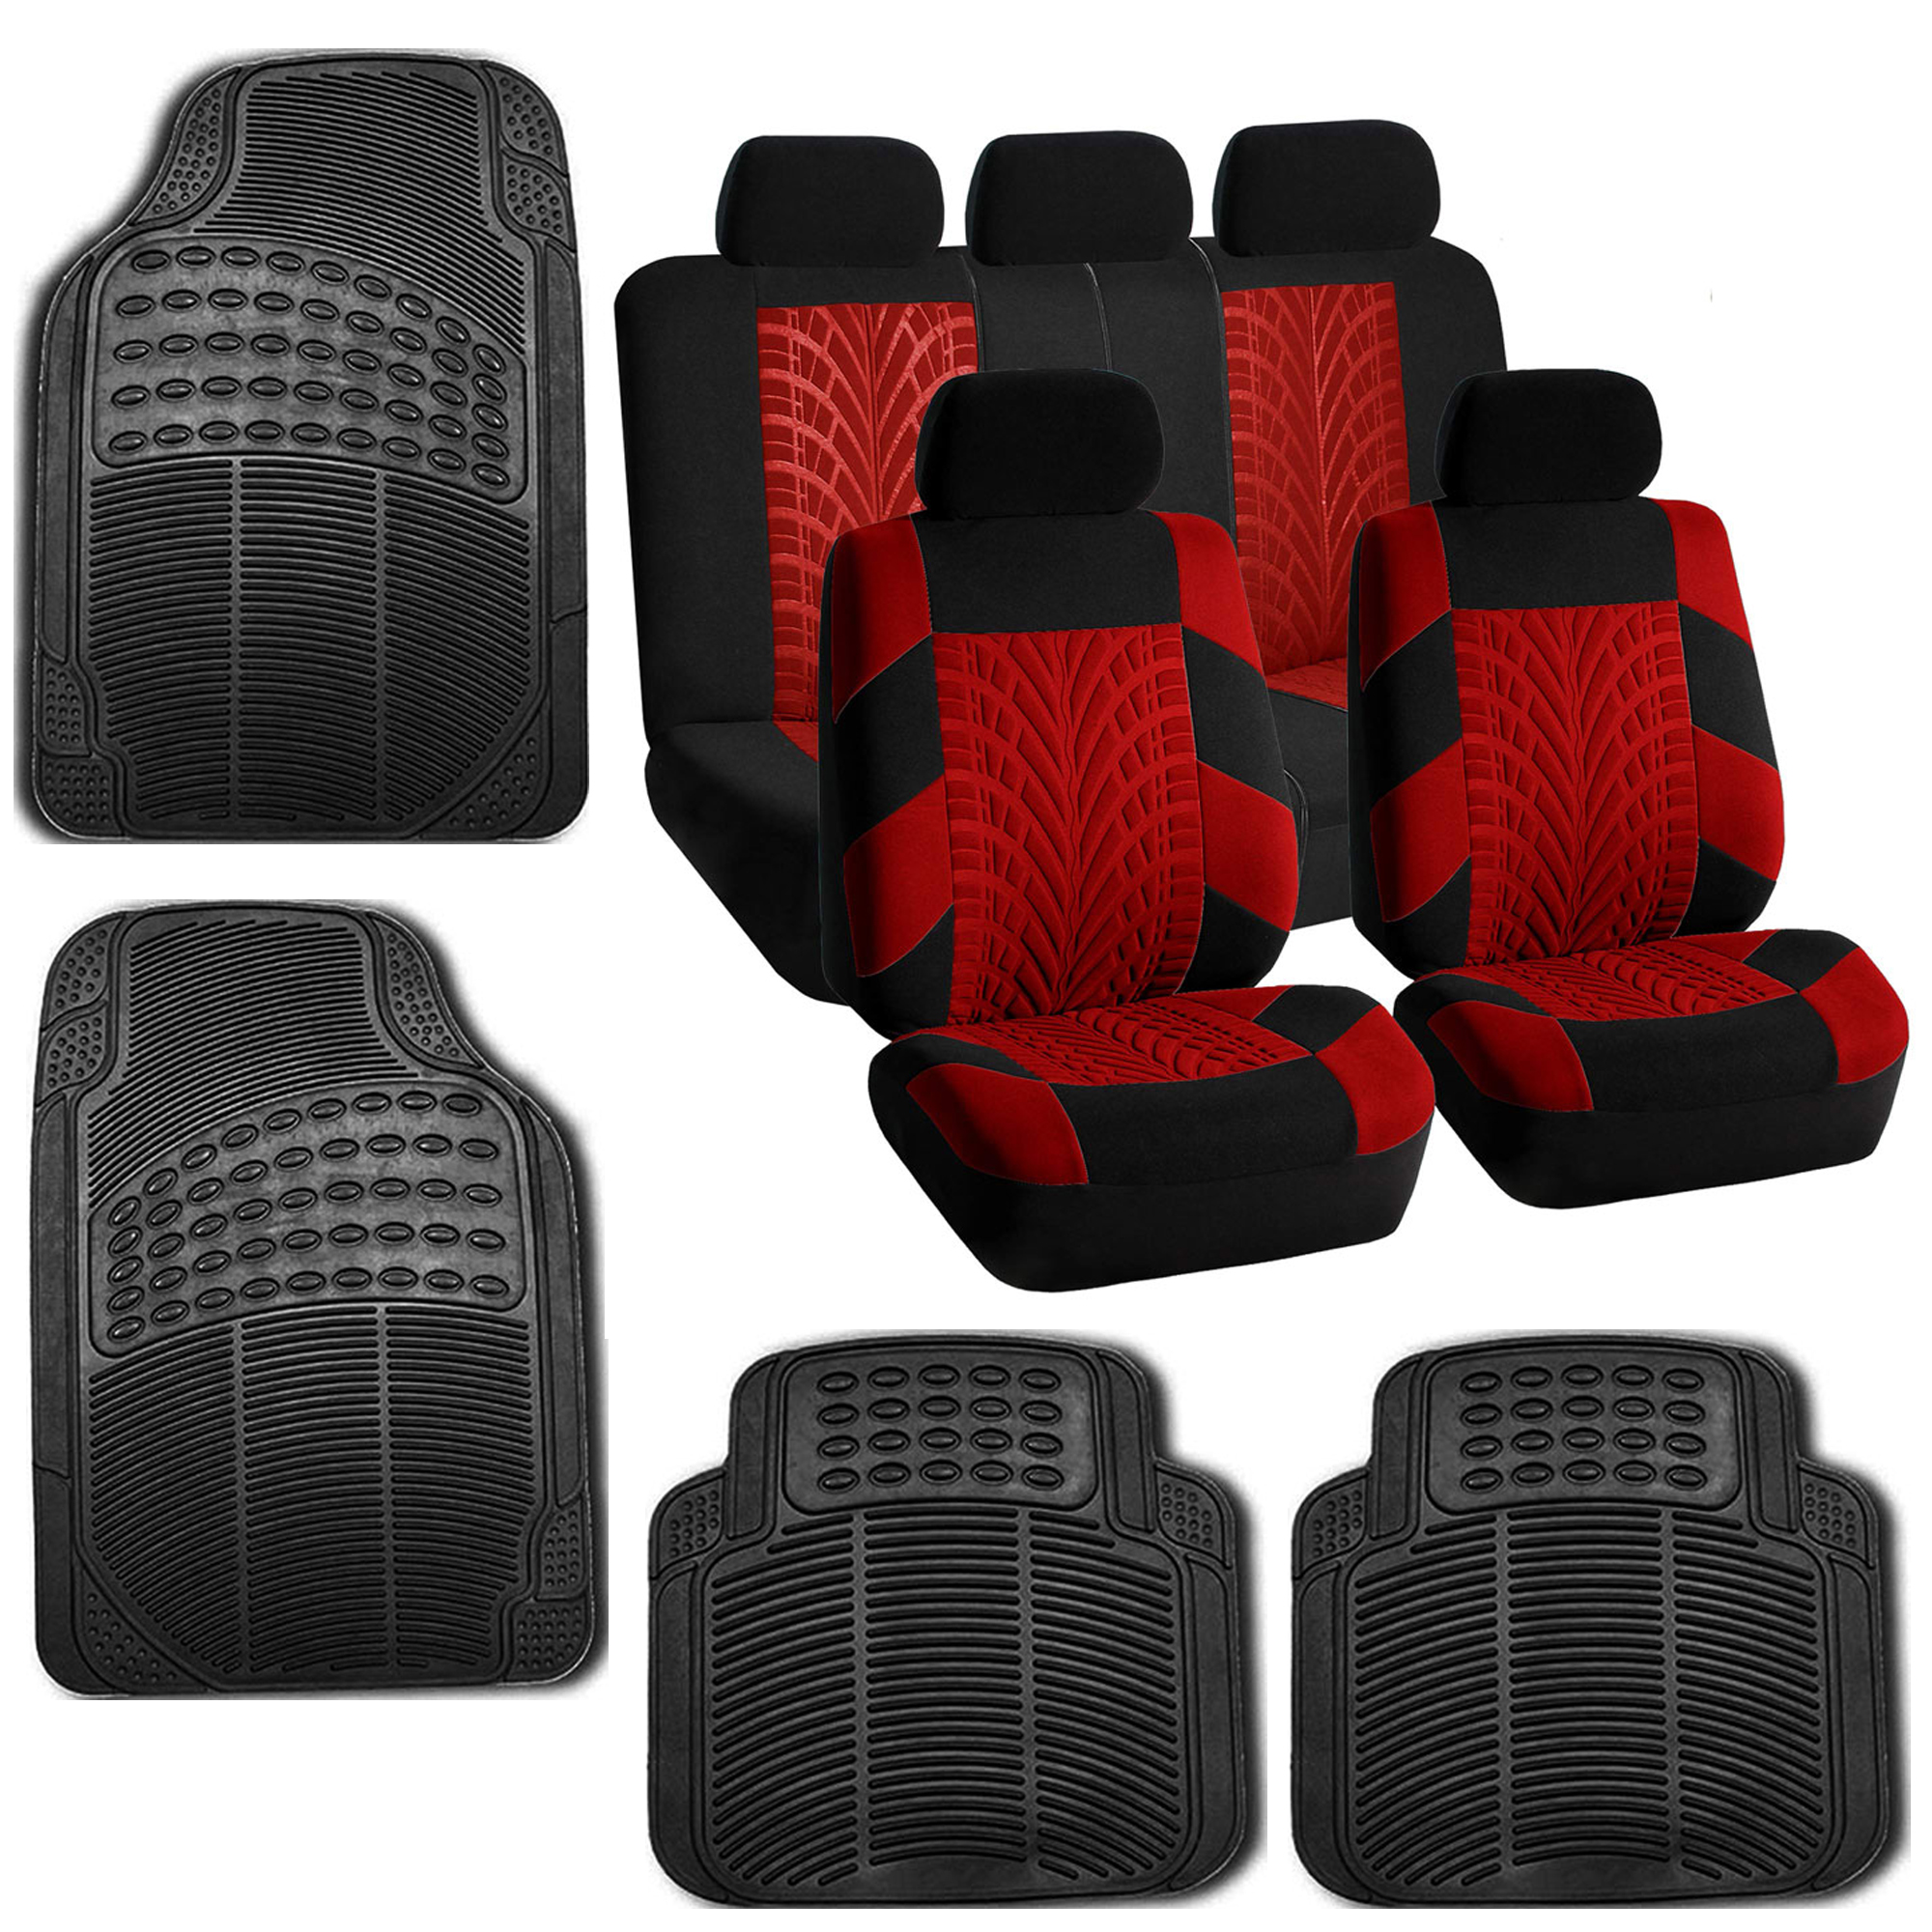 Car Seat Covers Best Full Set In Beige For Car SUV Rubber